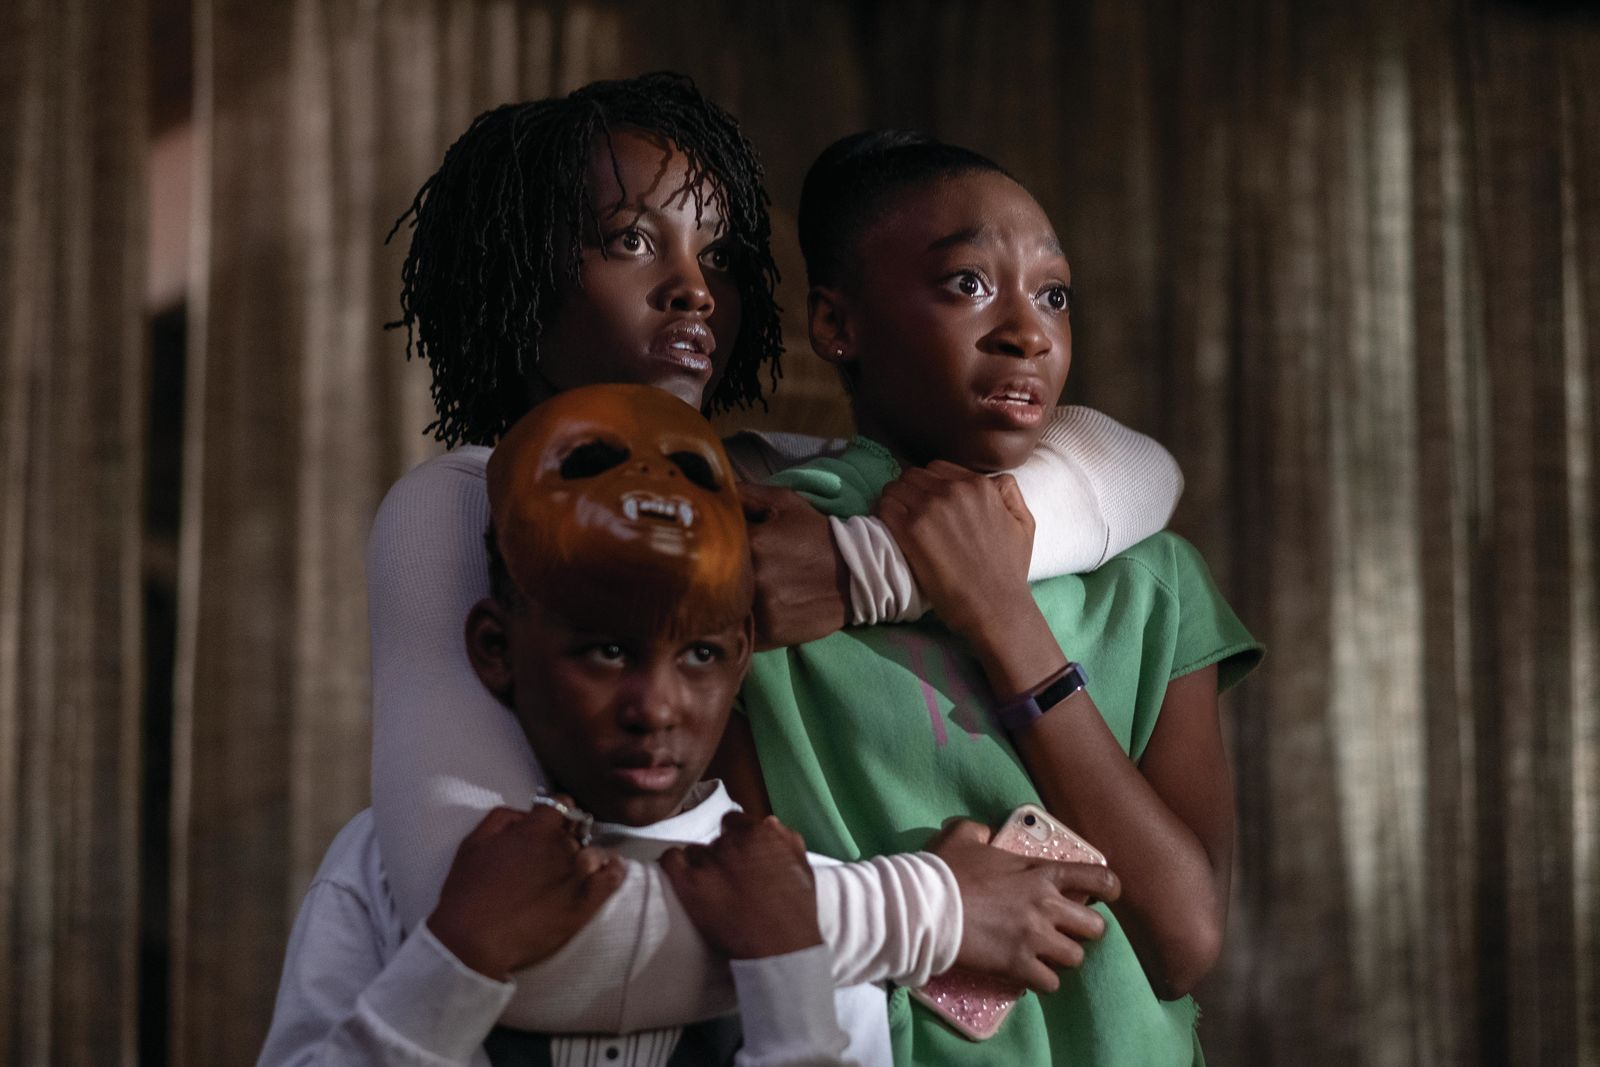 "(clockwise from left) Jason Wilson (Evan Alex), Adelaide Wilson (Lupita Nyong'o) and Zora Wilson (Shahadi Wright Joseph) in ""Us,"" written, produced and directed by Jordan Peele.{ }(Photo: Universal Pictures)"